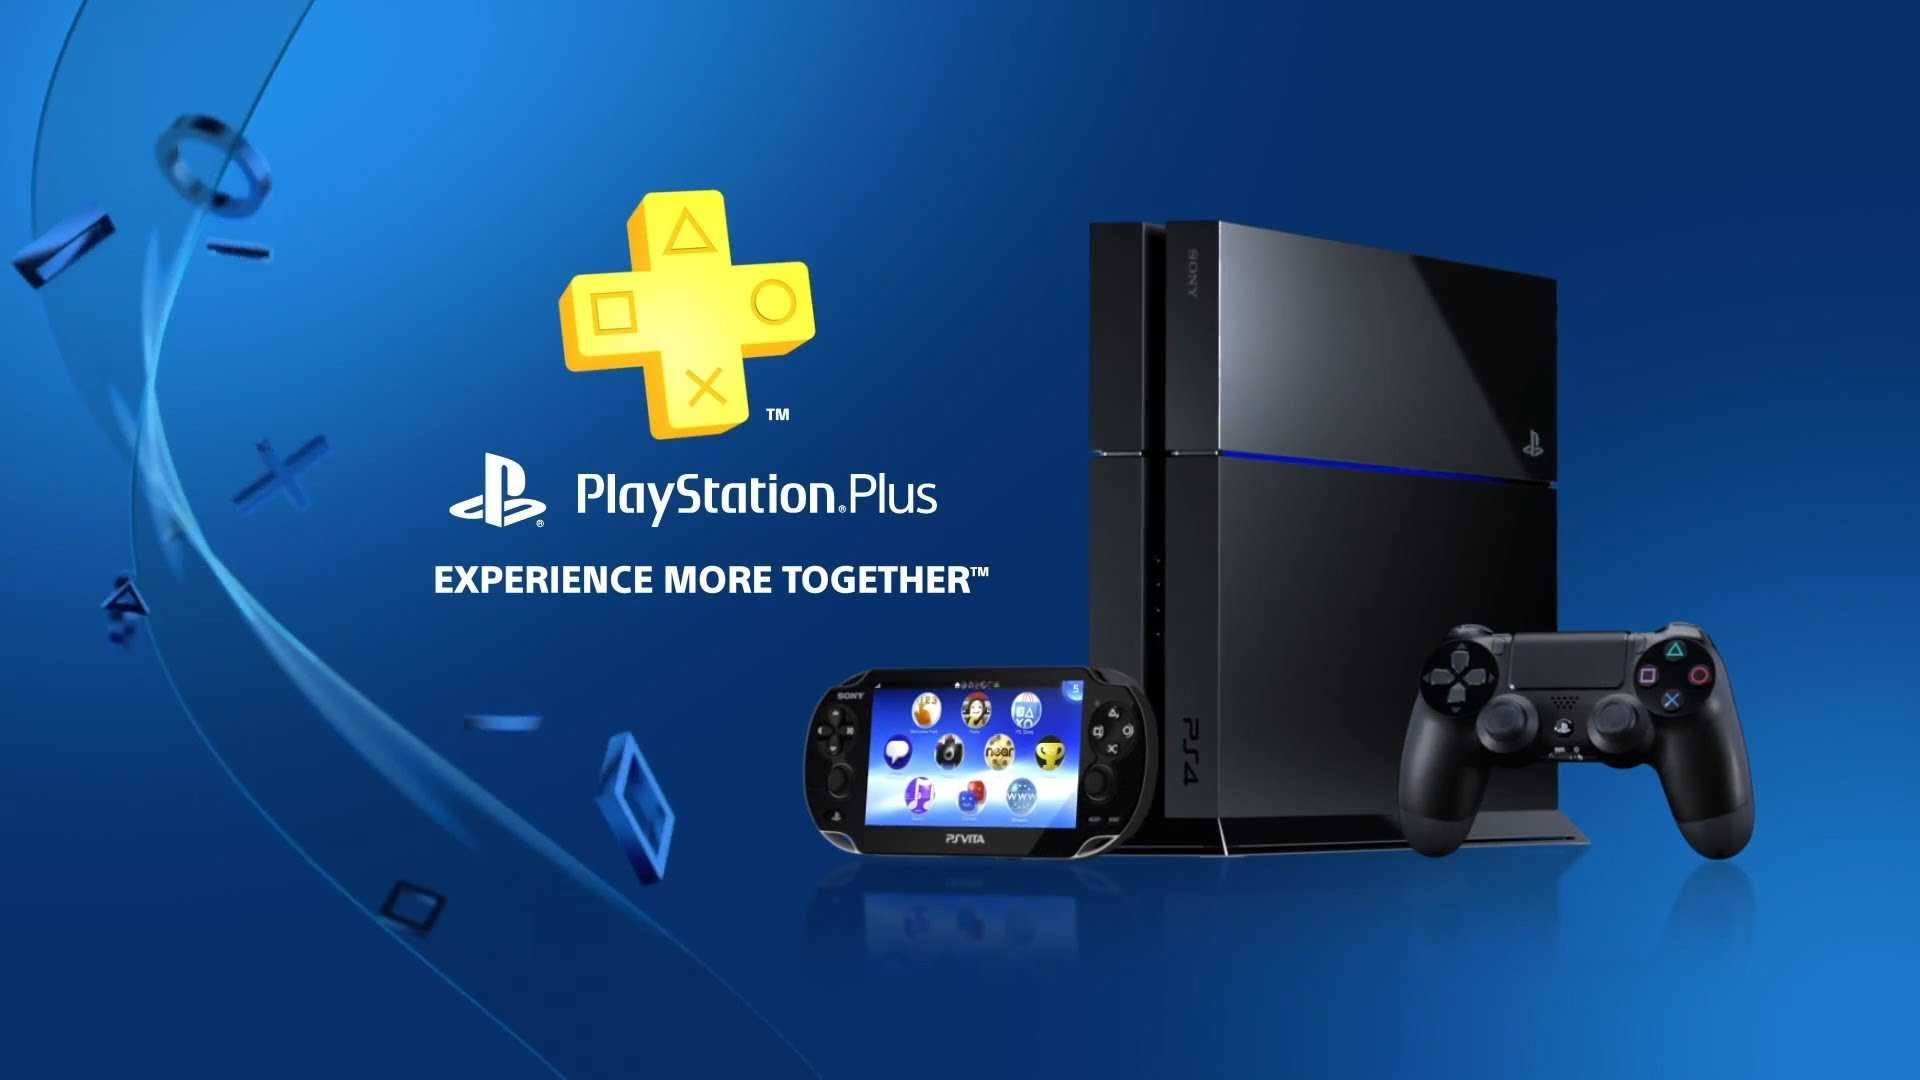 PlayStation Plus Will Stop Giving Free PS Vita and PS3 Games in 2019